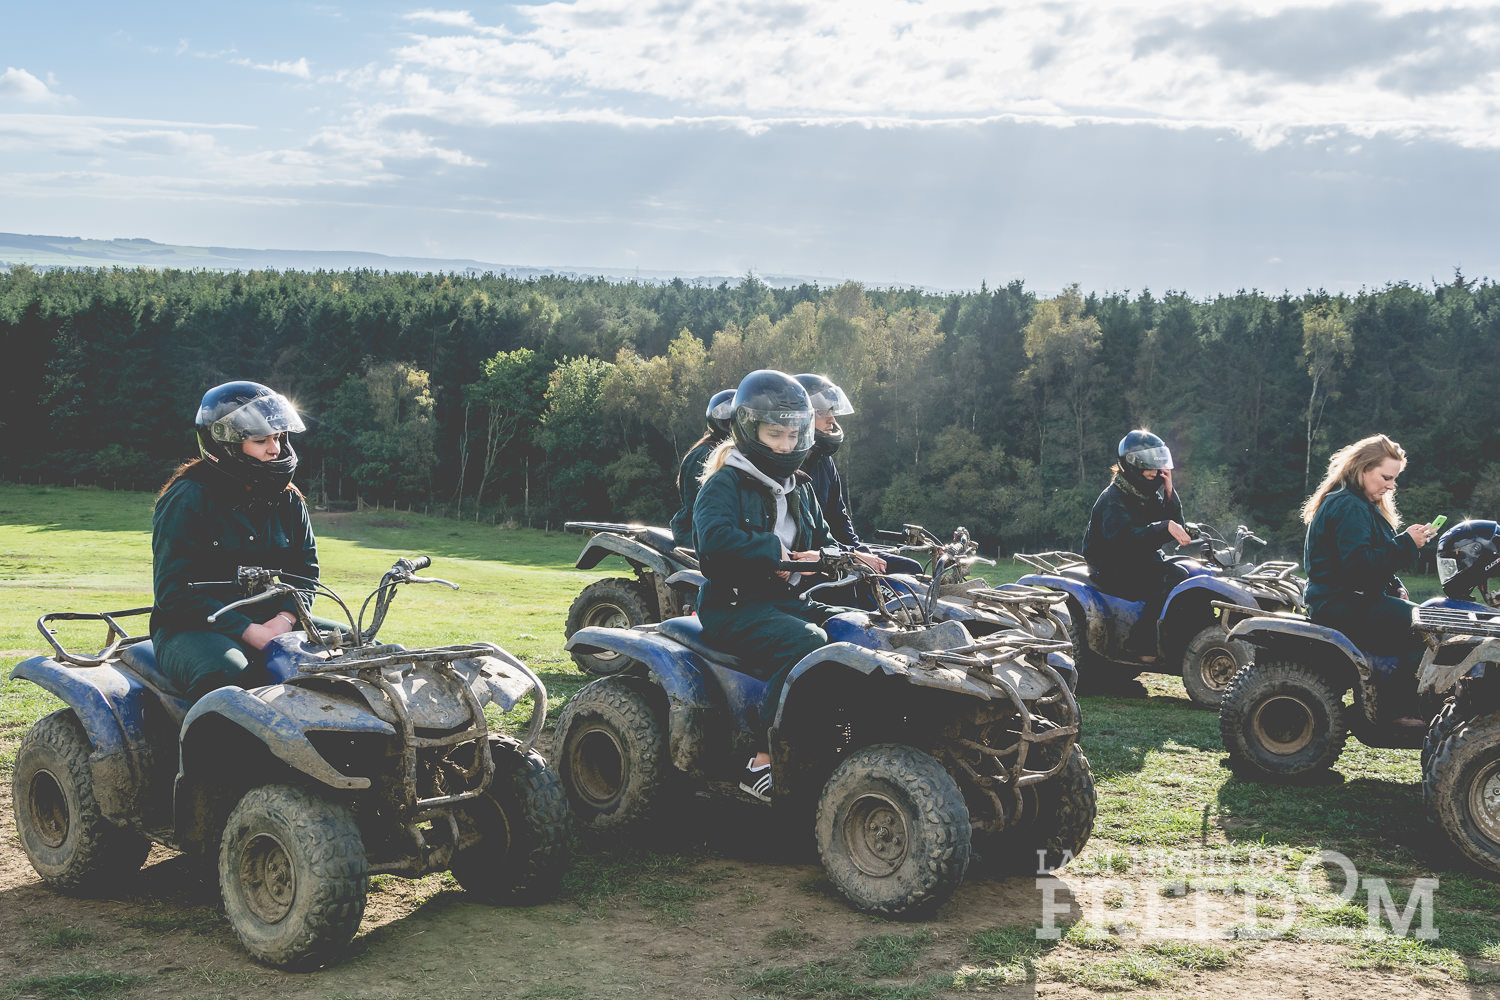 LNOF staff sitting on quad bikes, listening to instructions